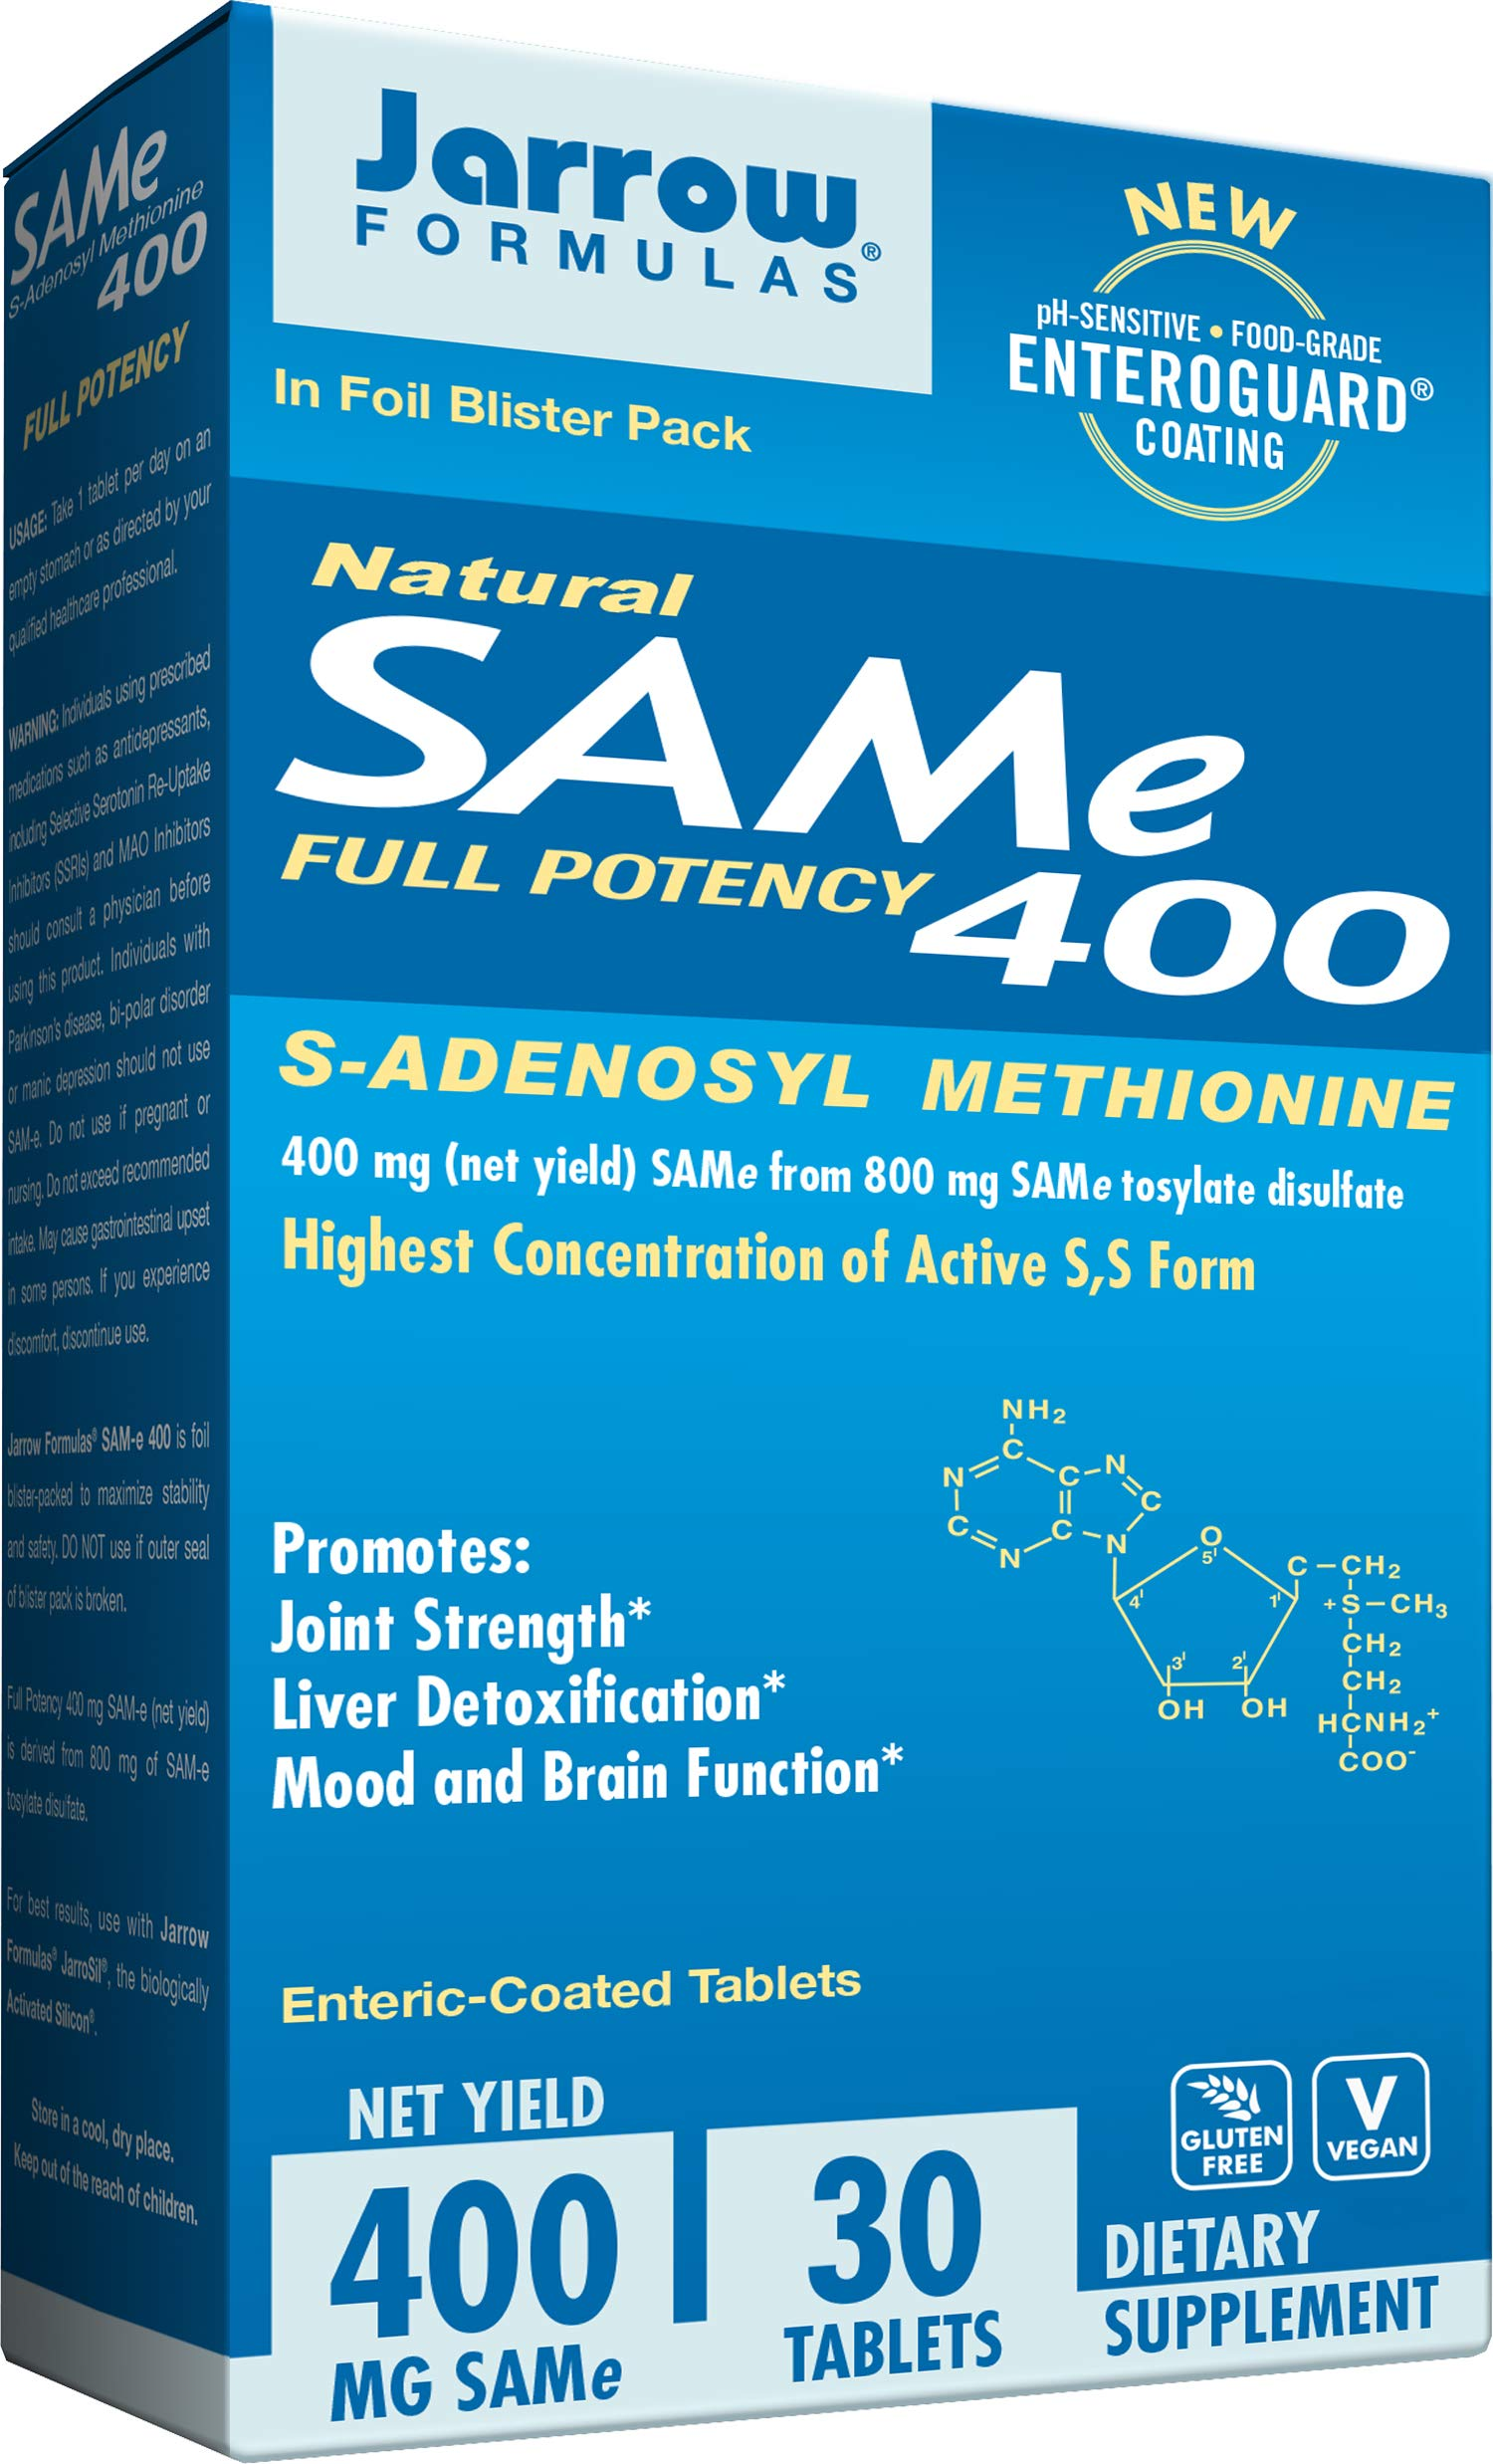 Jarrow Formulas SAM-e, Promotes Joint Strength, Mood and Brain Function, 400 mg, 30 Enteric- Coated tabs by Jarrow Formulas